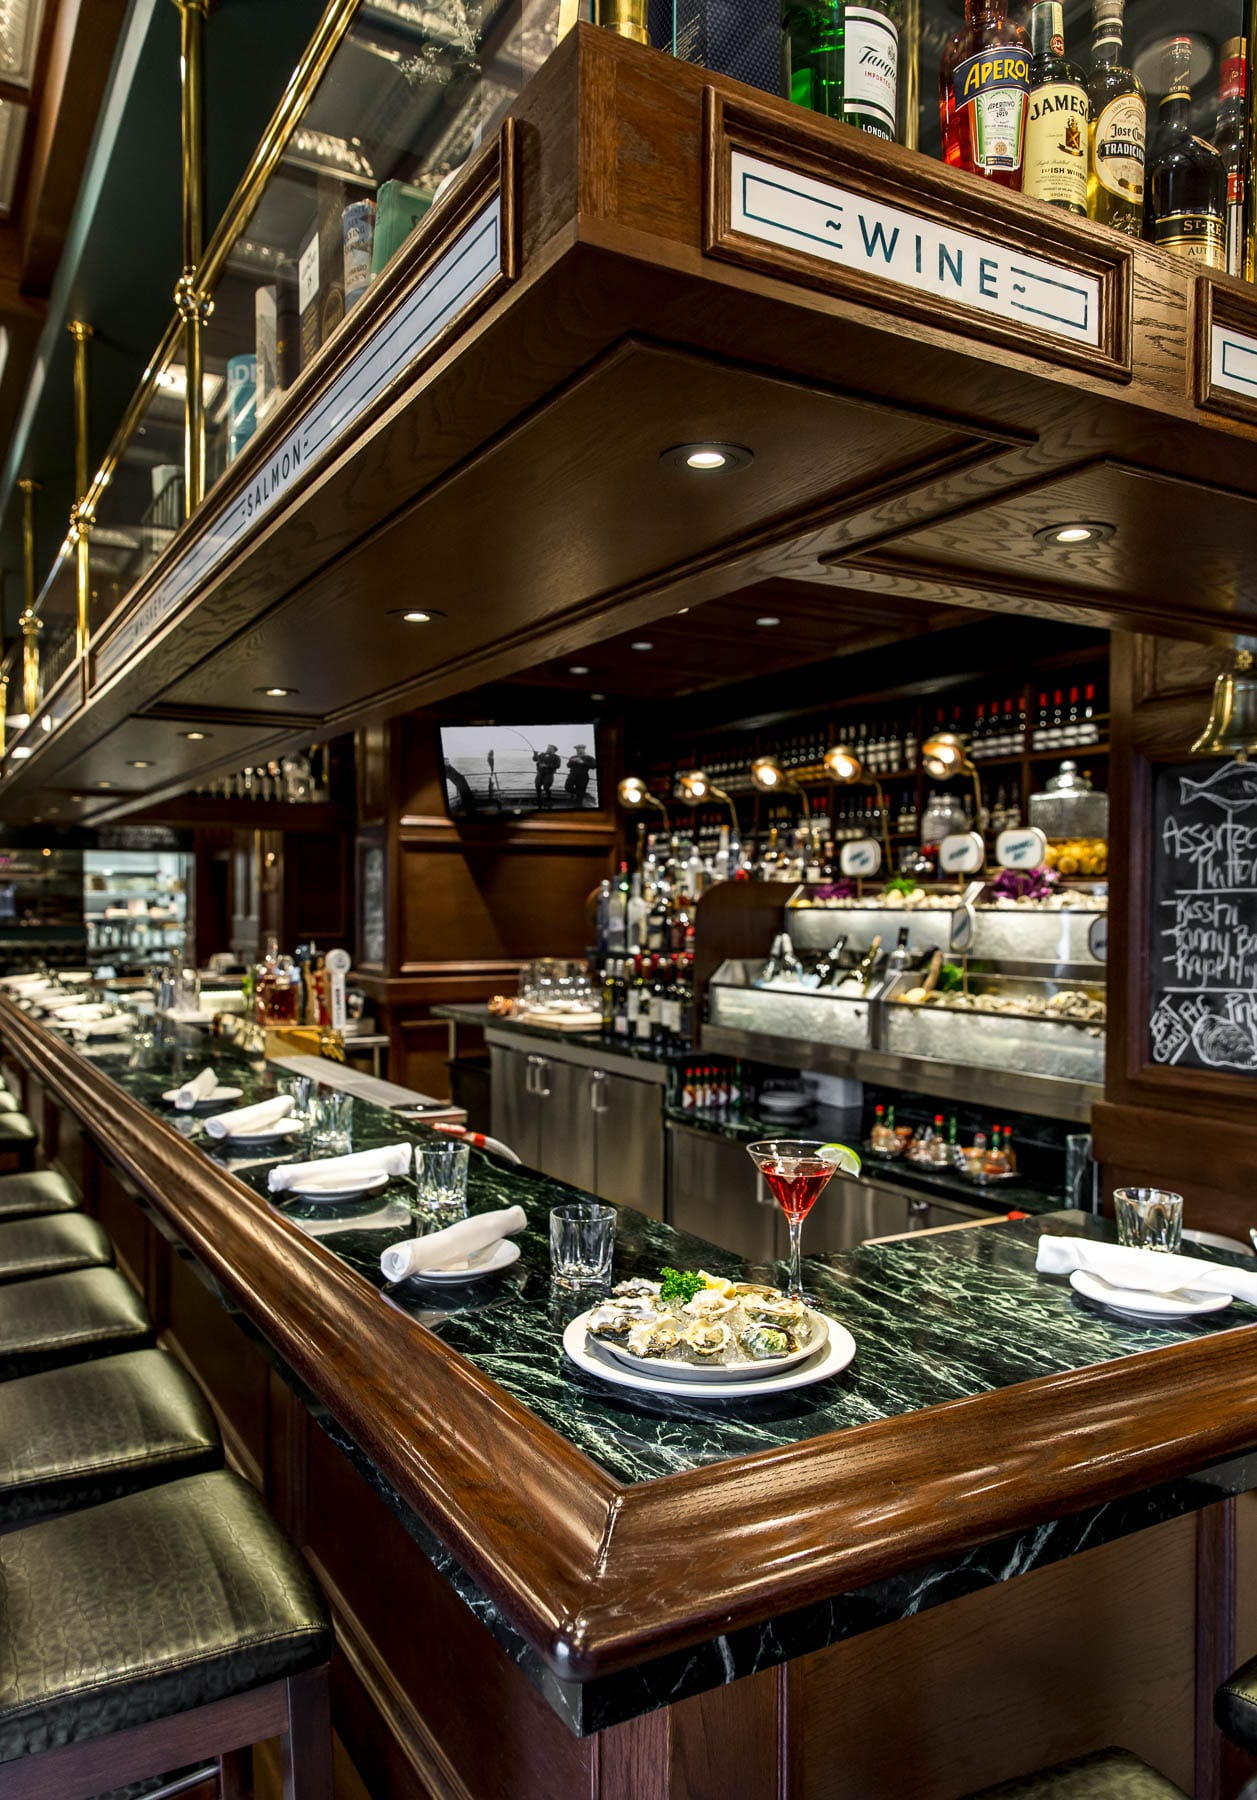 WildTale is an award-winning restaurant within a newly built mixed-use development in Olympic Village.